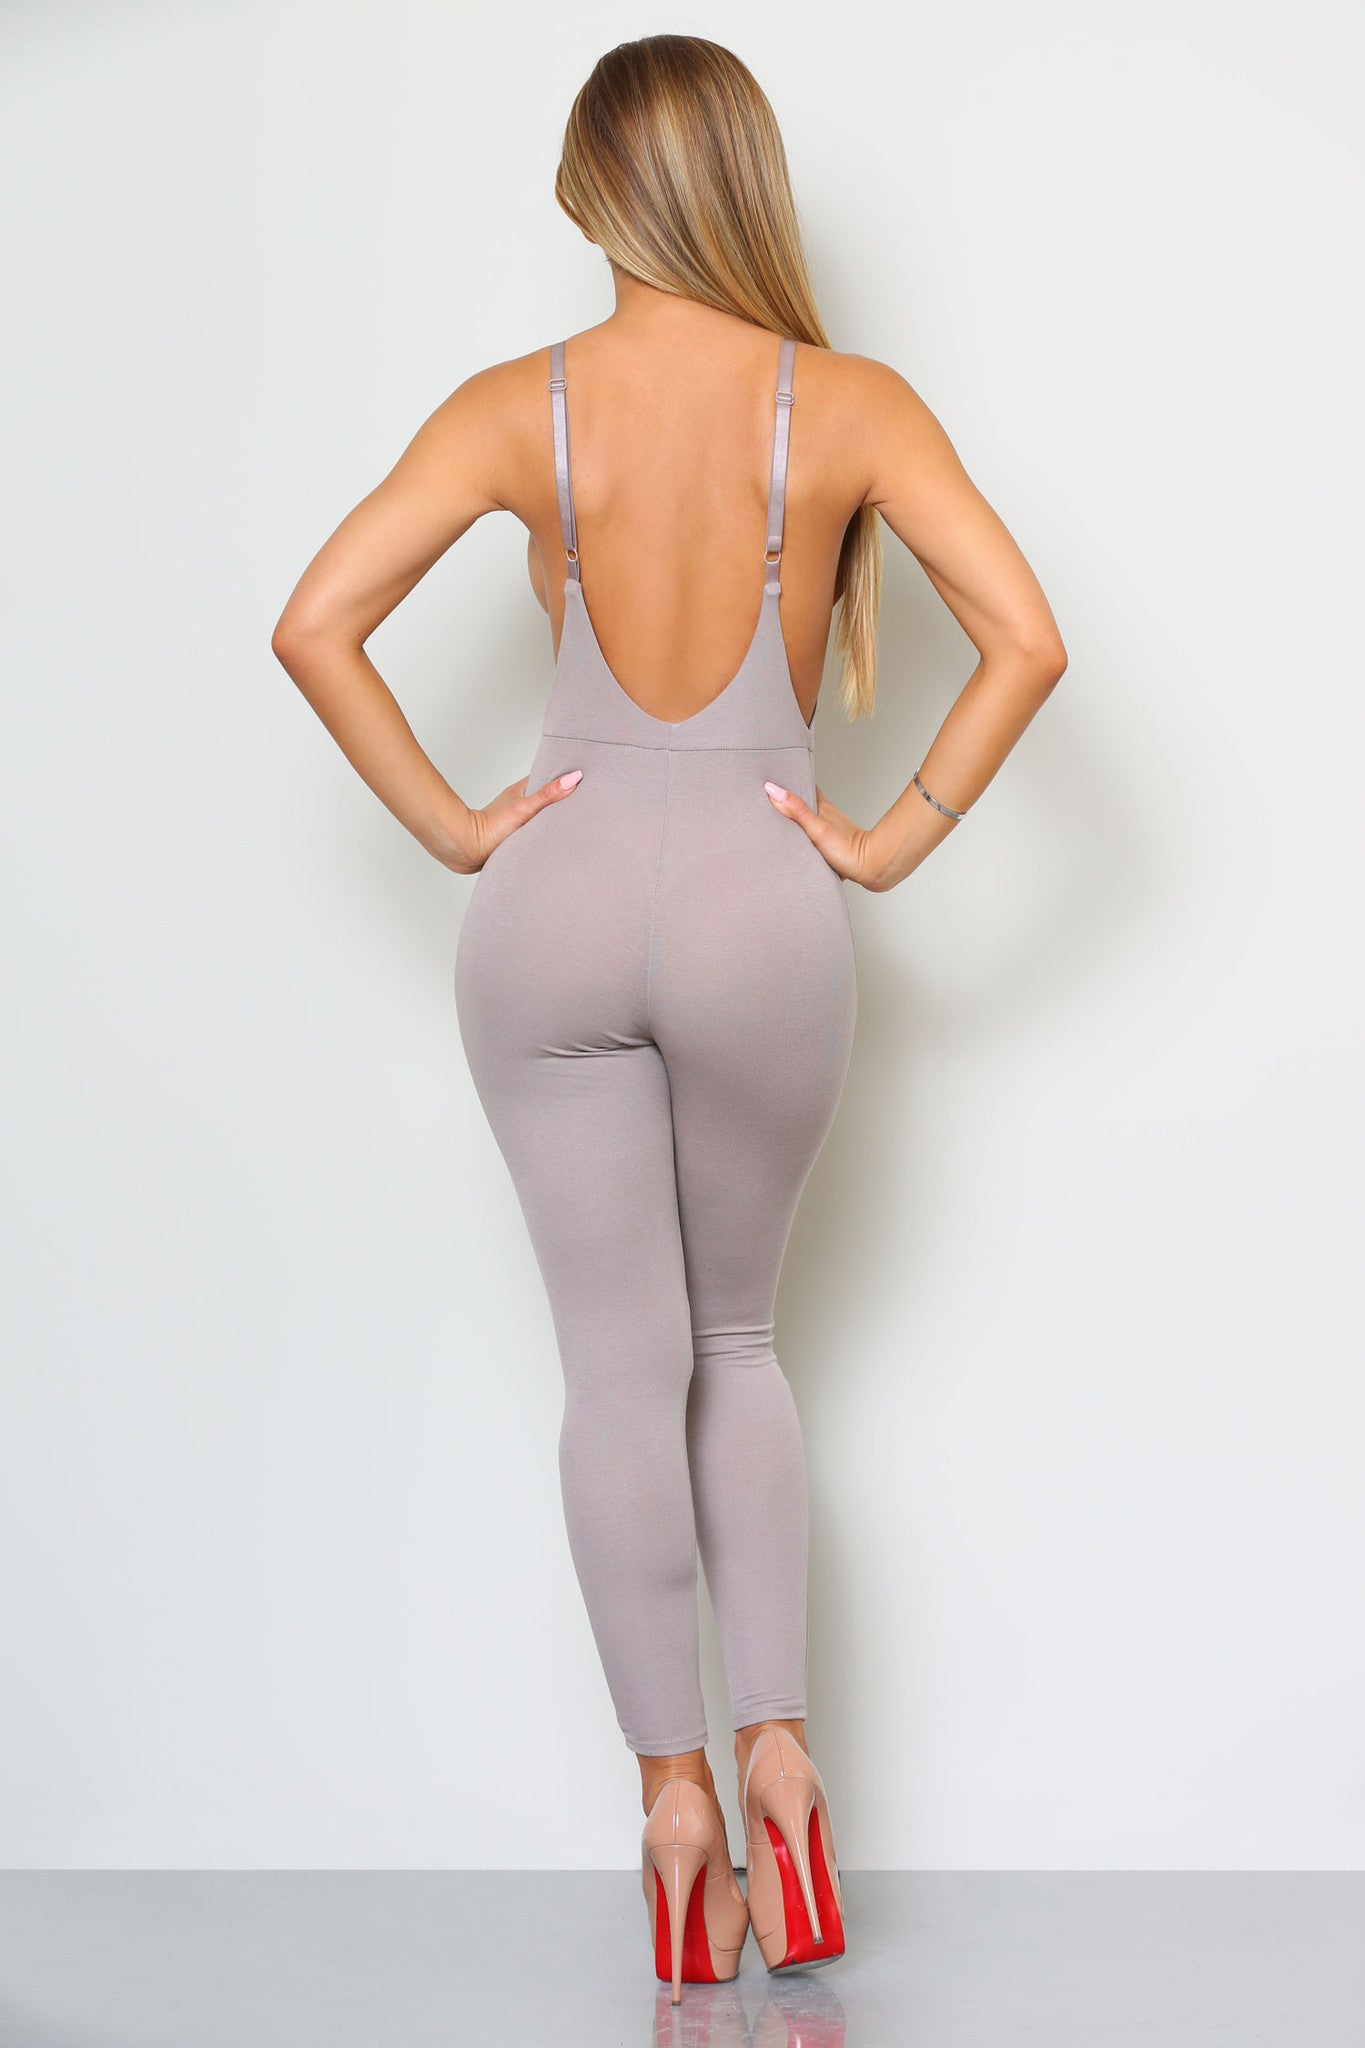 LAUREL UNITARD - Glam Envy - 3